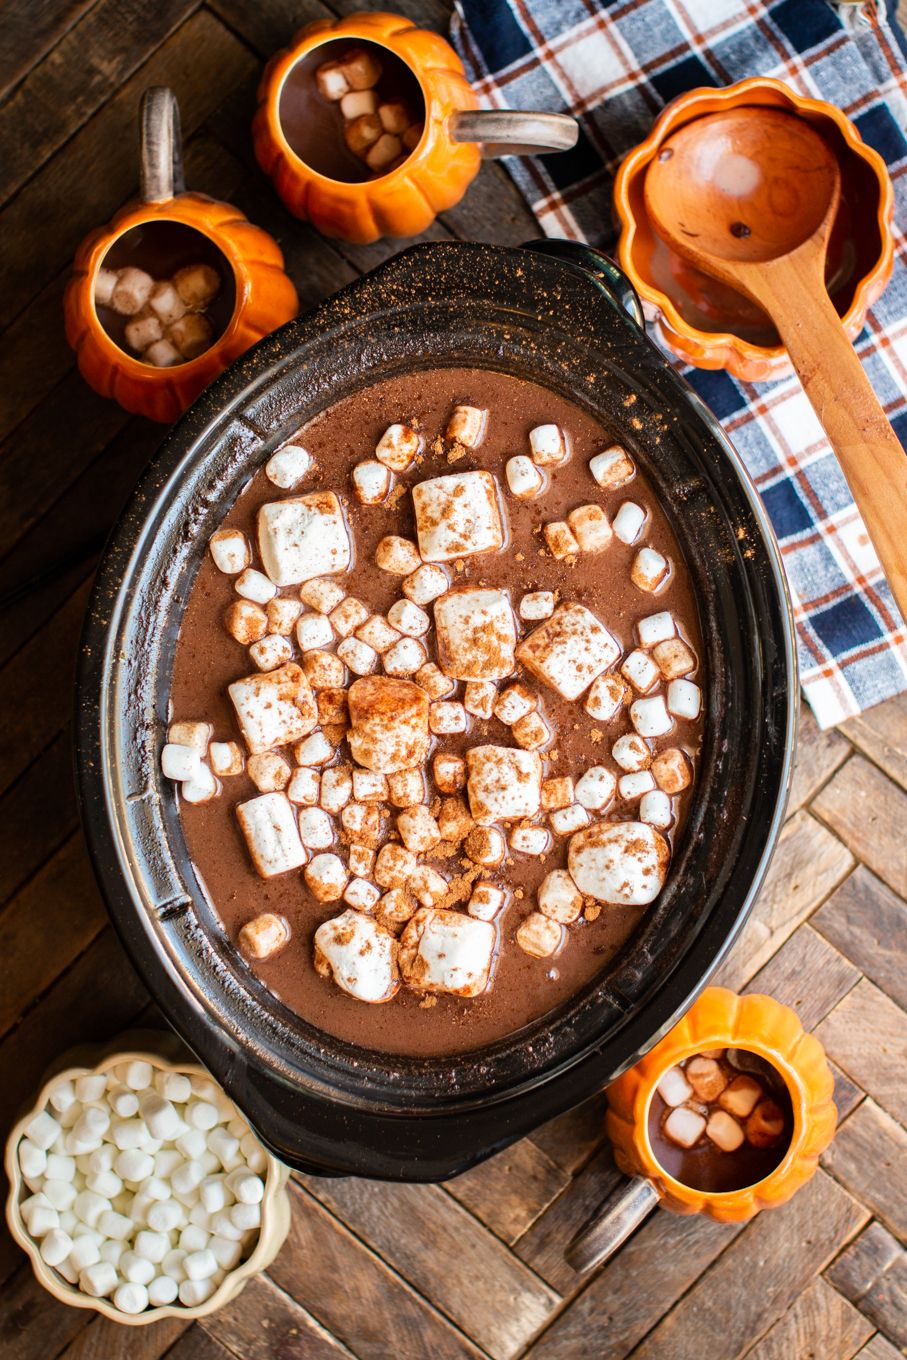 Slow Cooker Pumpkin Spice Hot Chocolate - The Magical Slow Cooker